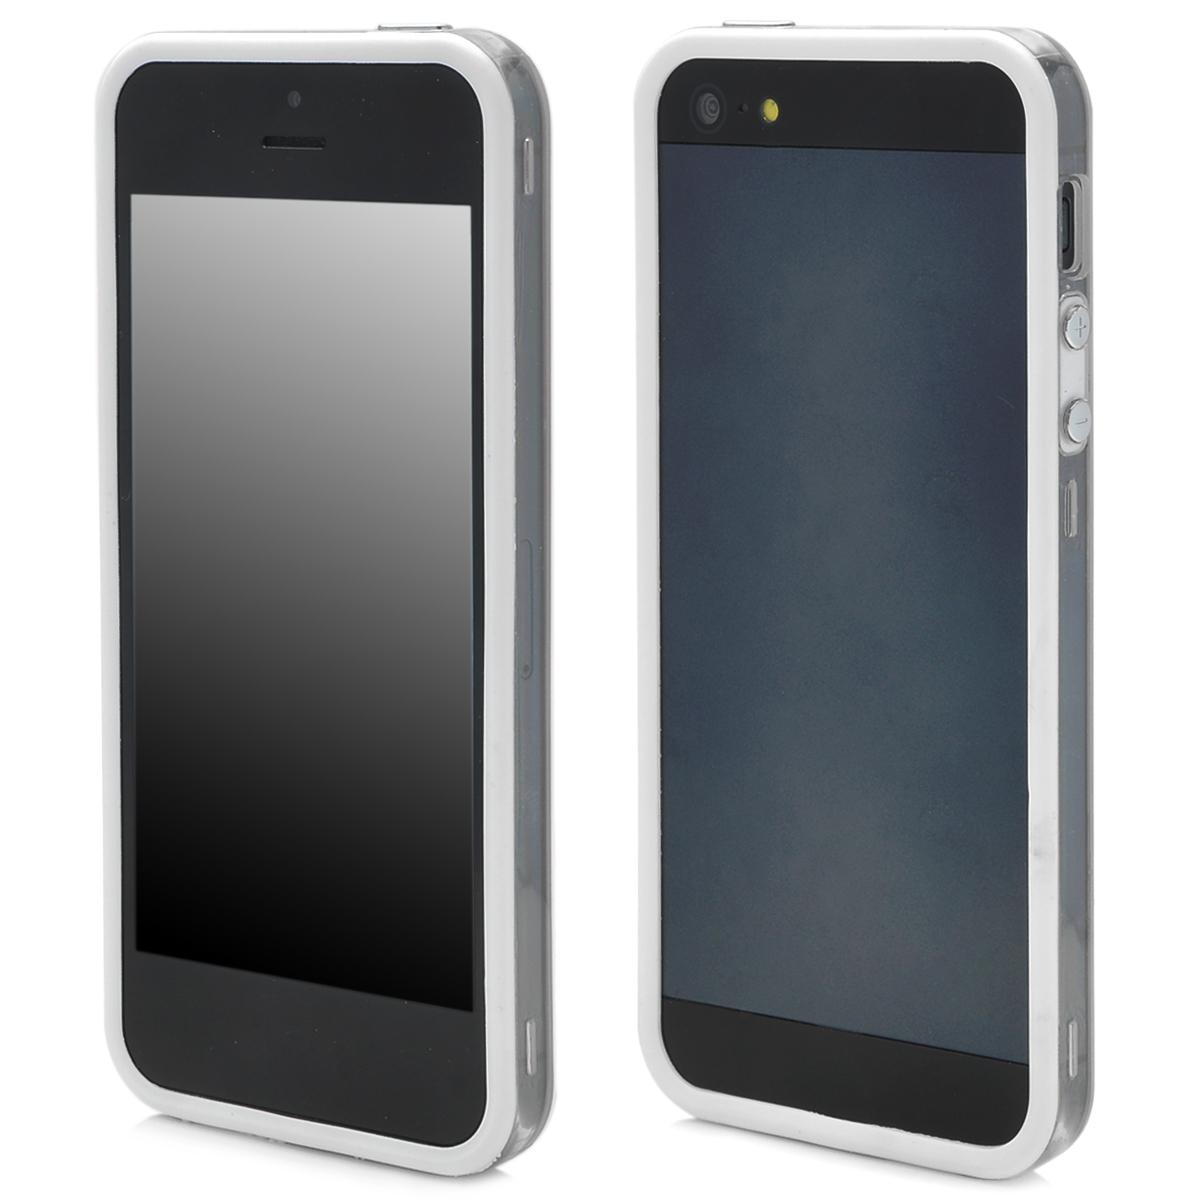 Protective TPU Bumper Frame Case for Iphone 5 - White + Transparent